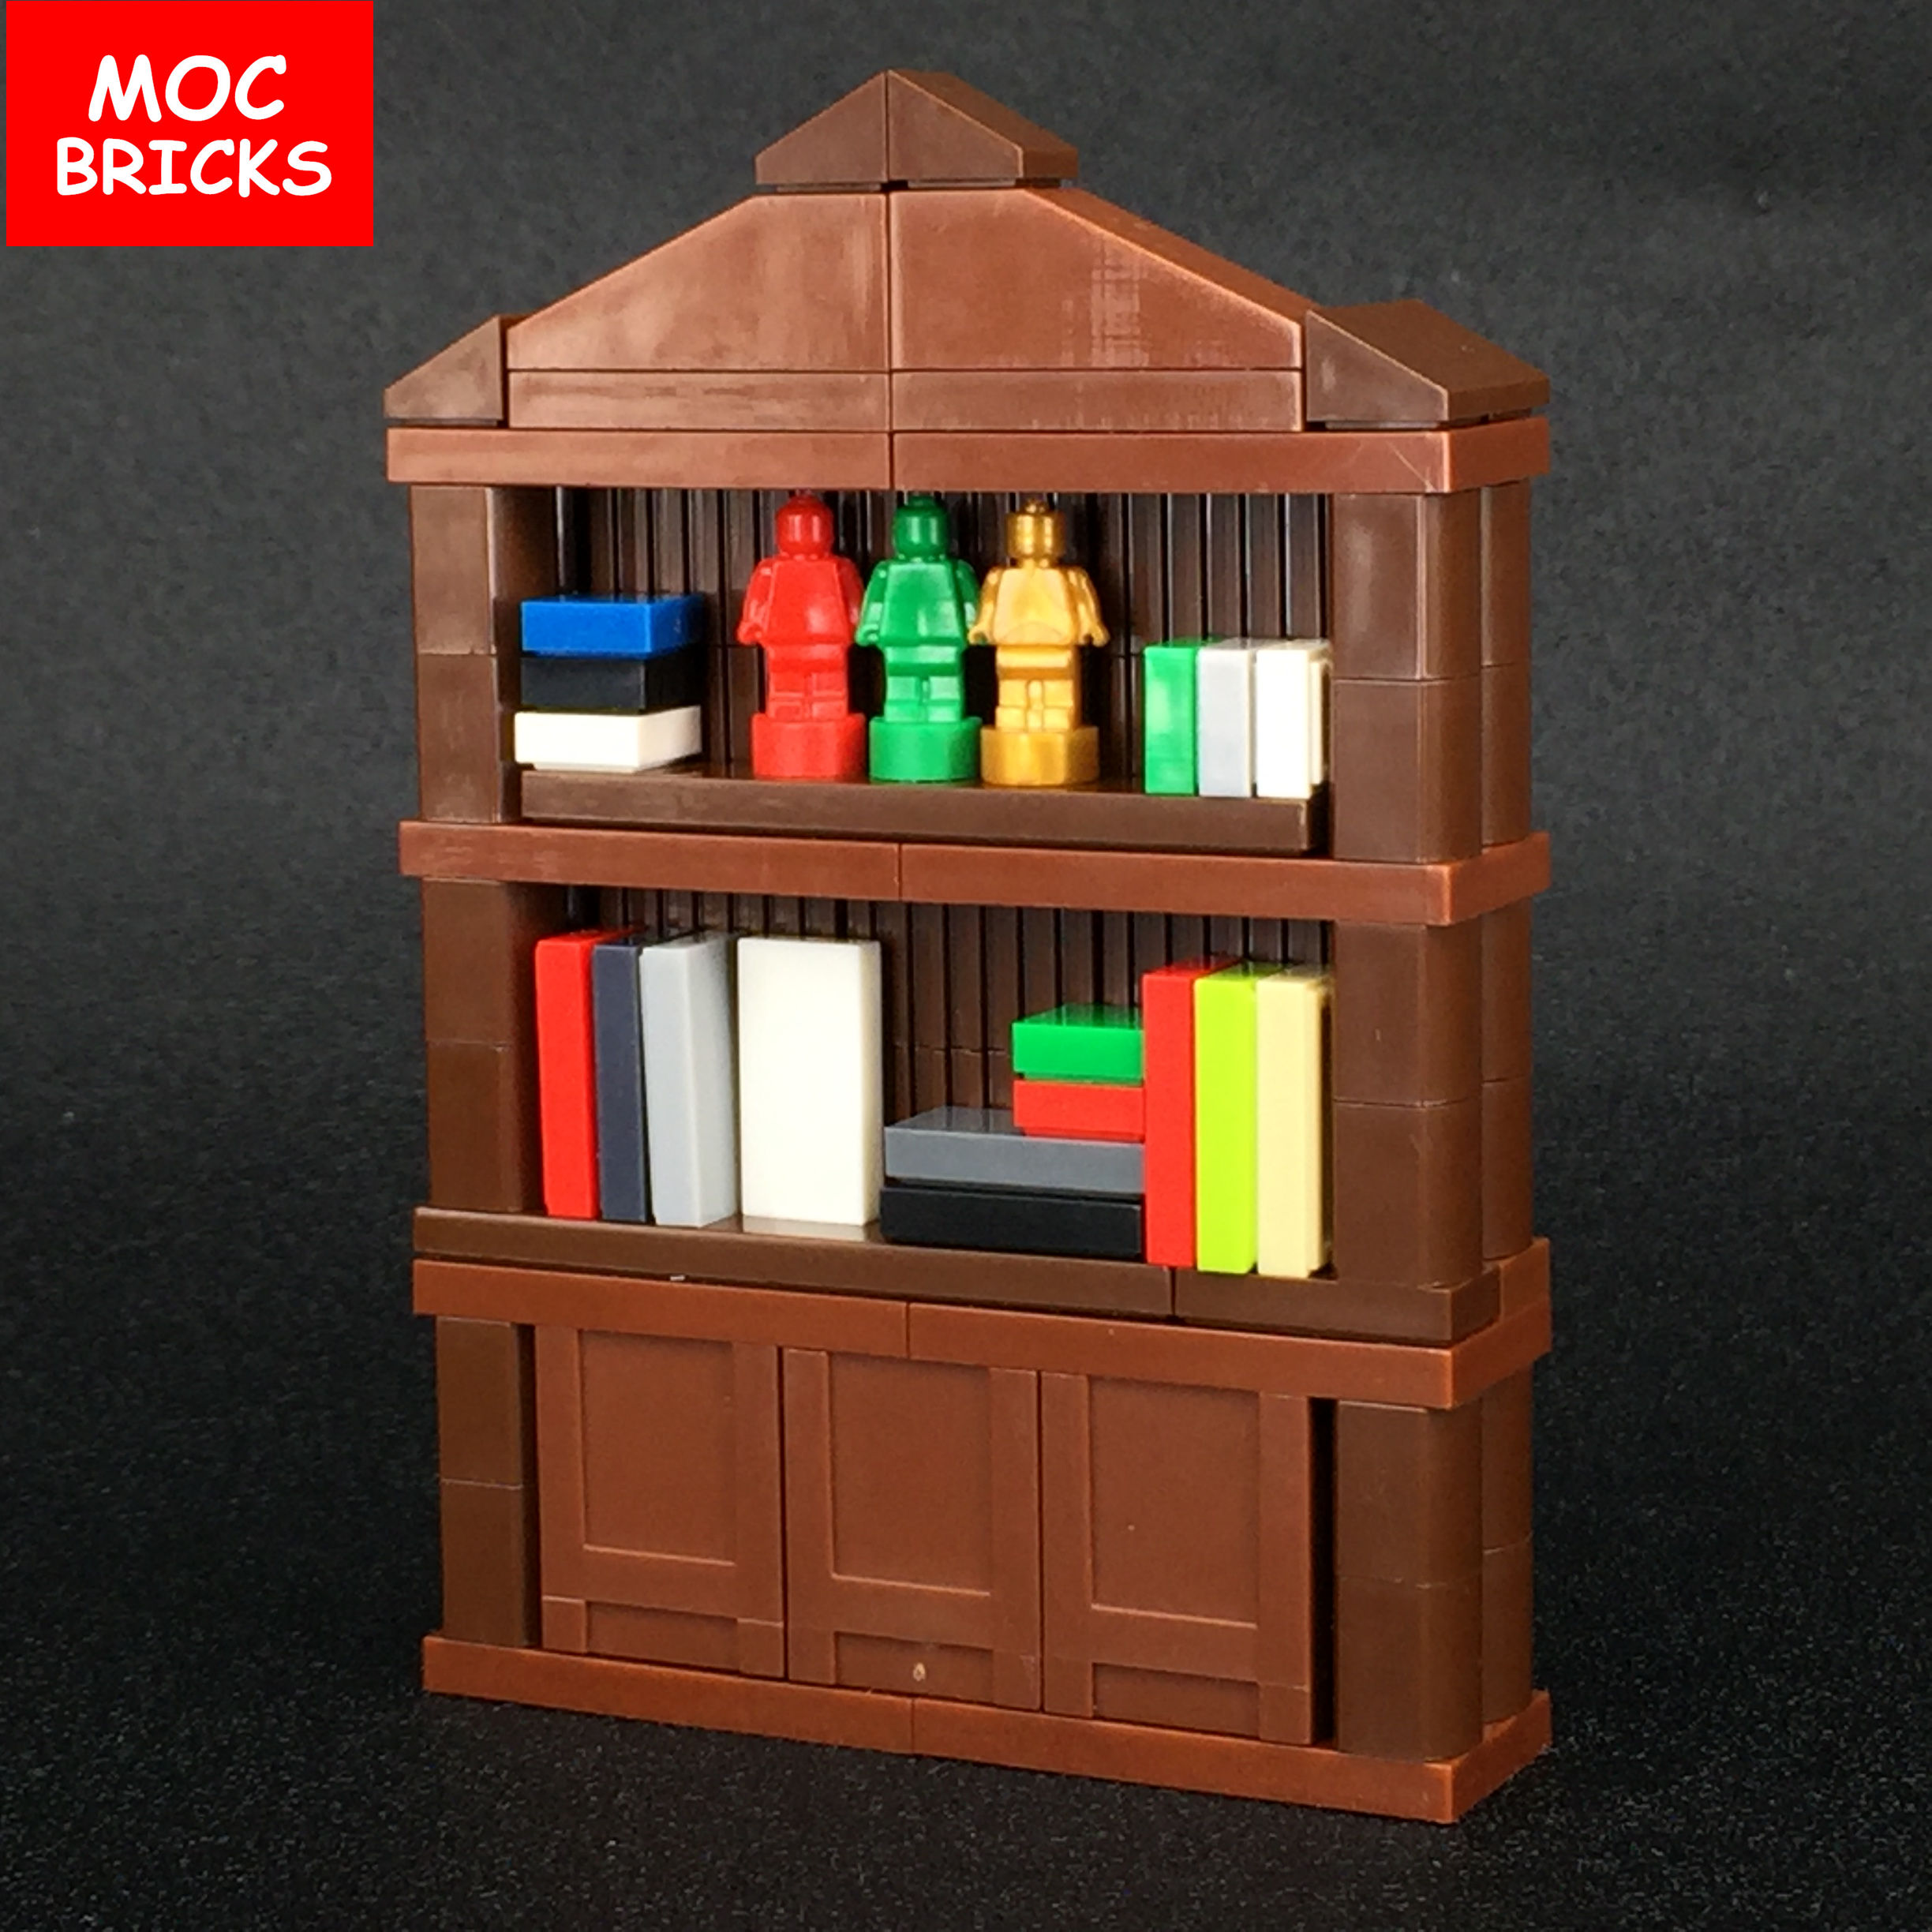 Buy Build Kids Furniture Online With Free Delivery # Muebles Juguetes Ninos